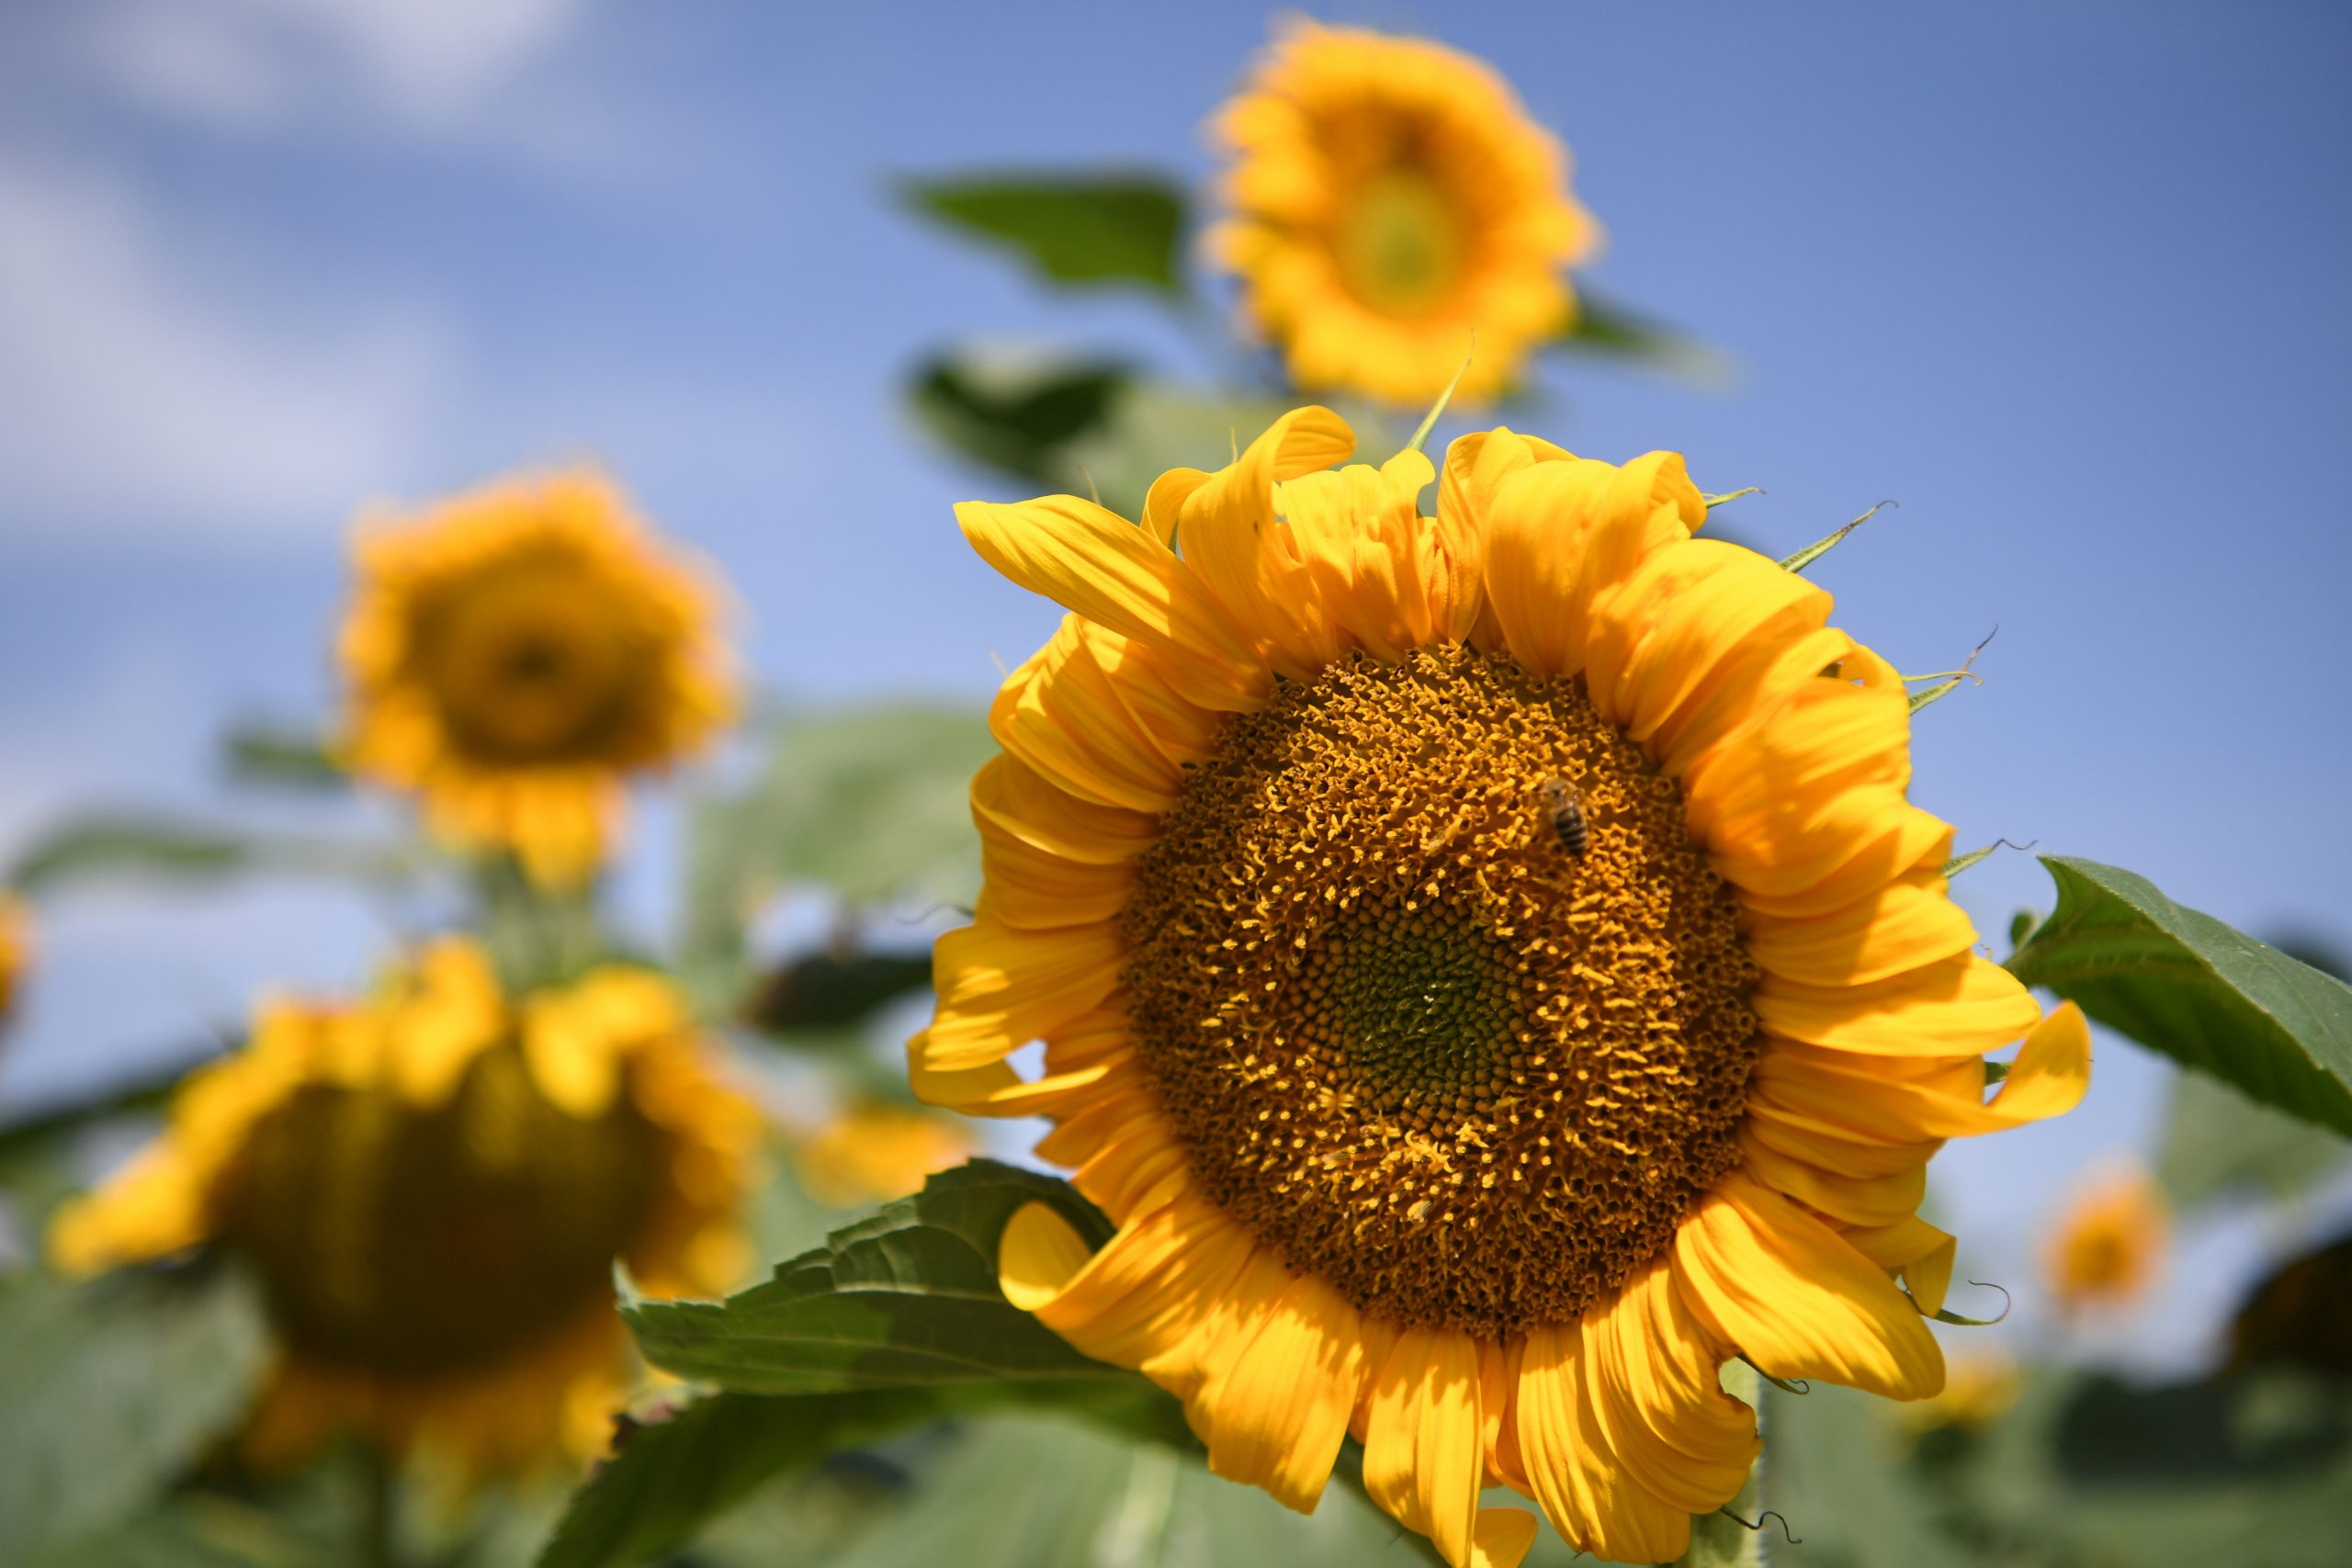 CHINA-GANSU-BAIYIN-SUNFLOWER (CN)